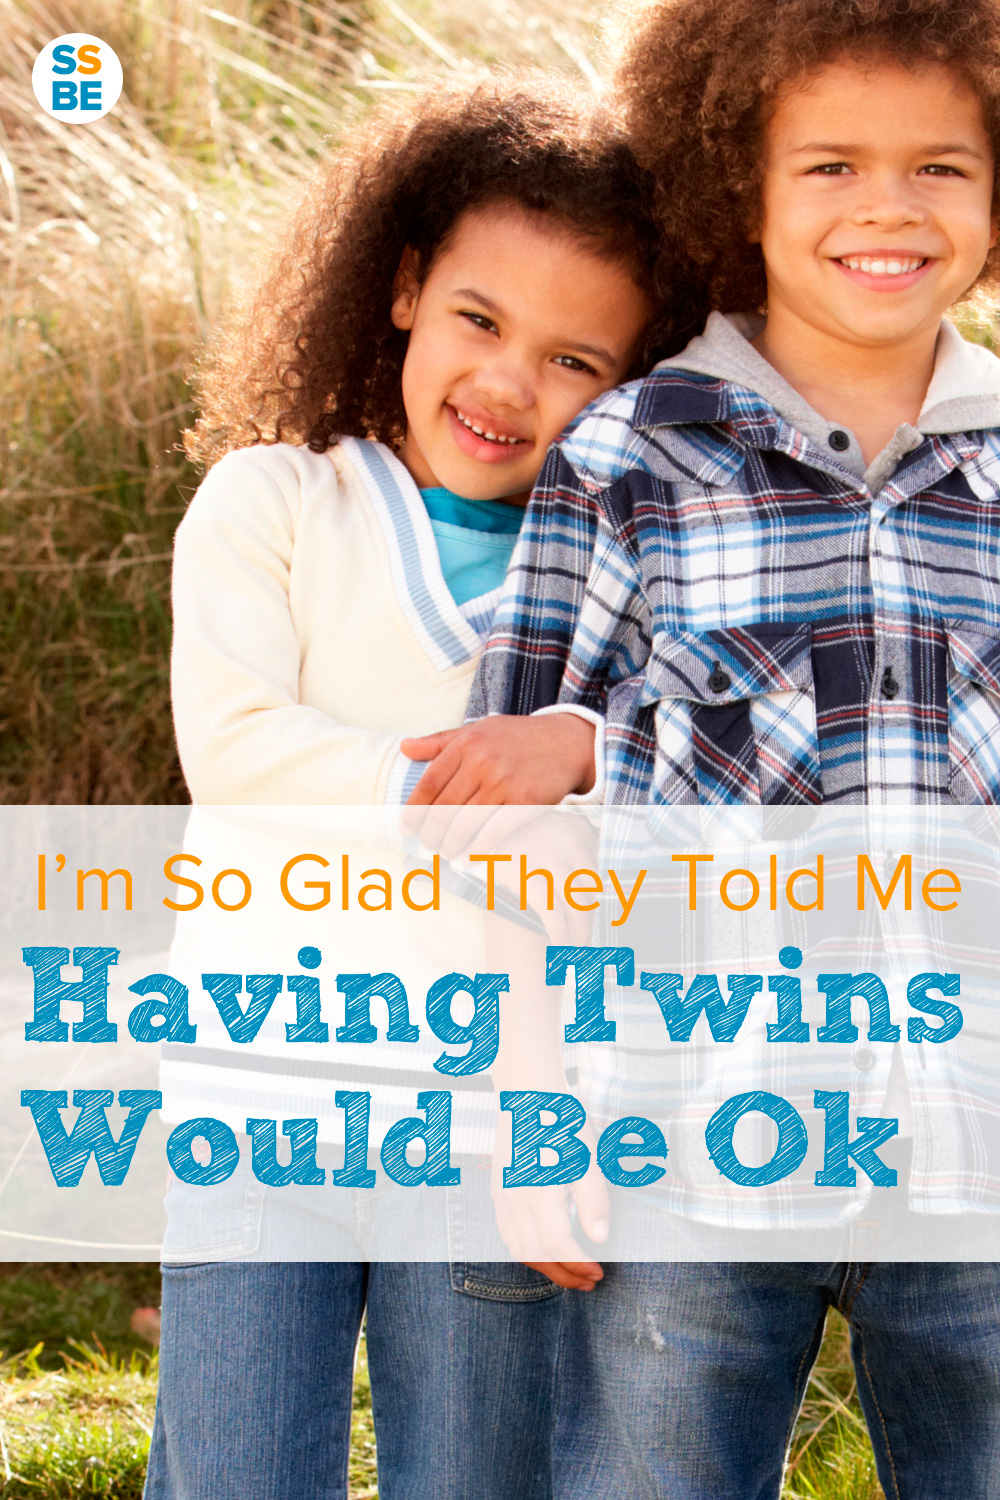 I'm So Glad They Told Me Having Twins Would Be Okay